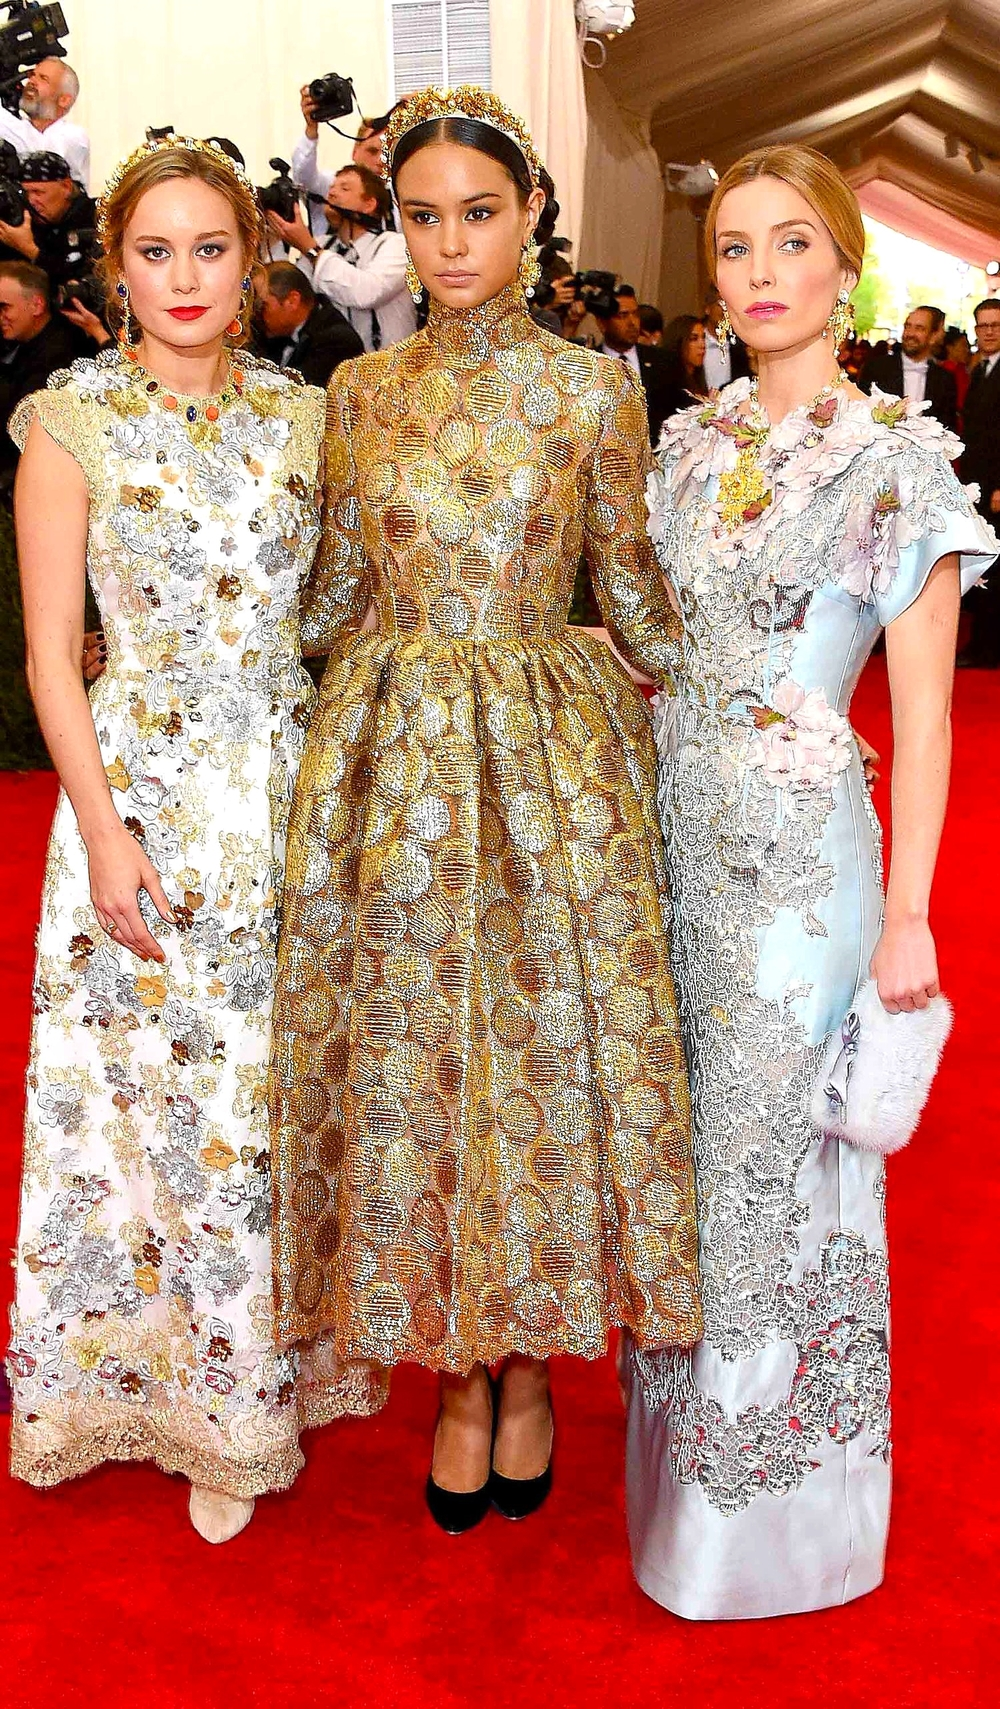 Brie Larson, Courtney Eaton and Annabelle Wallis        Getty Images/ Larry Busacca